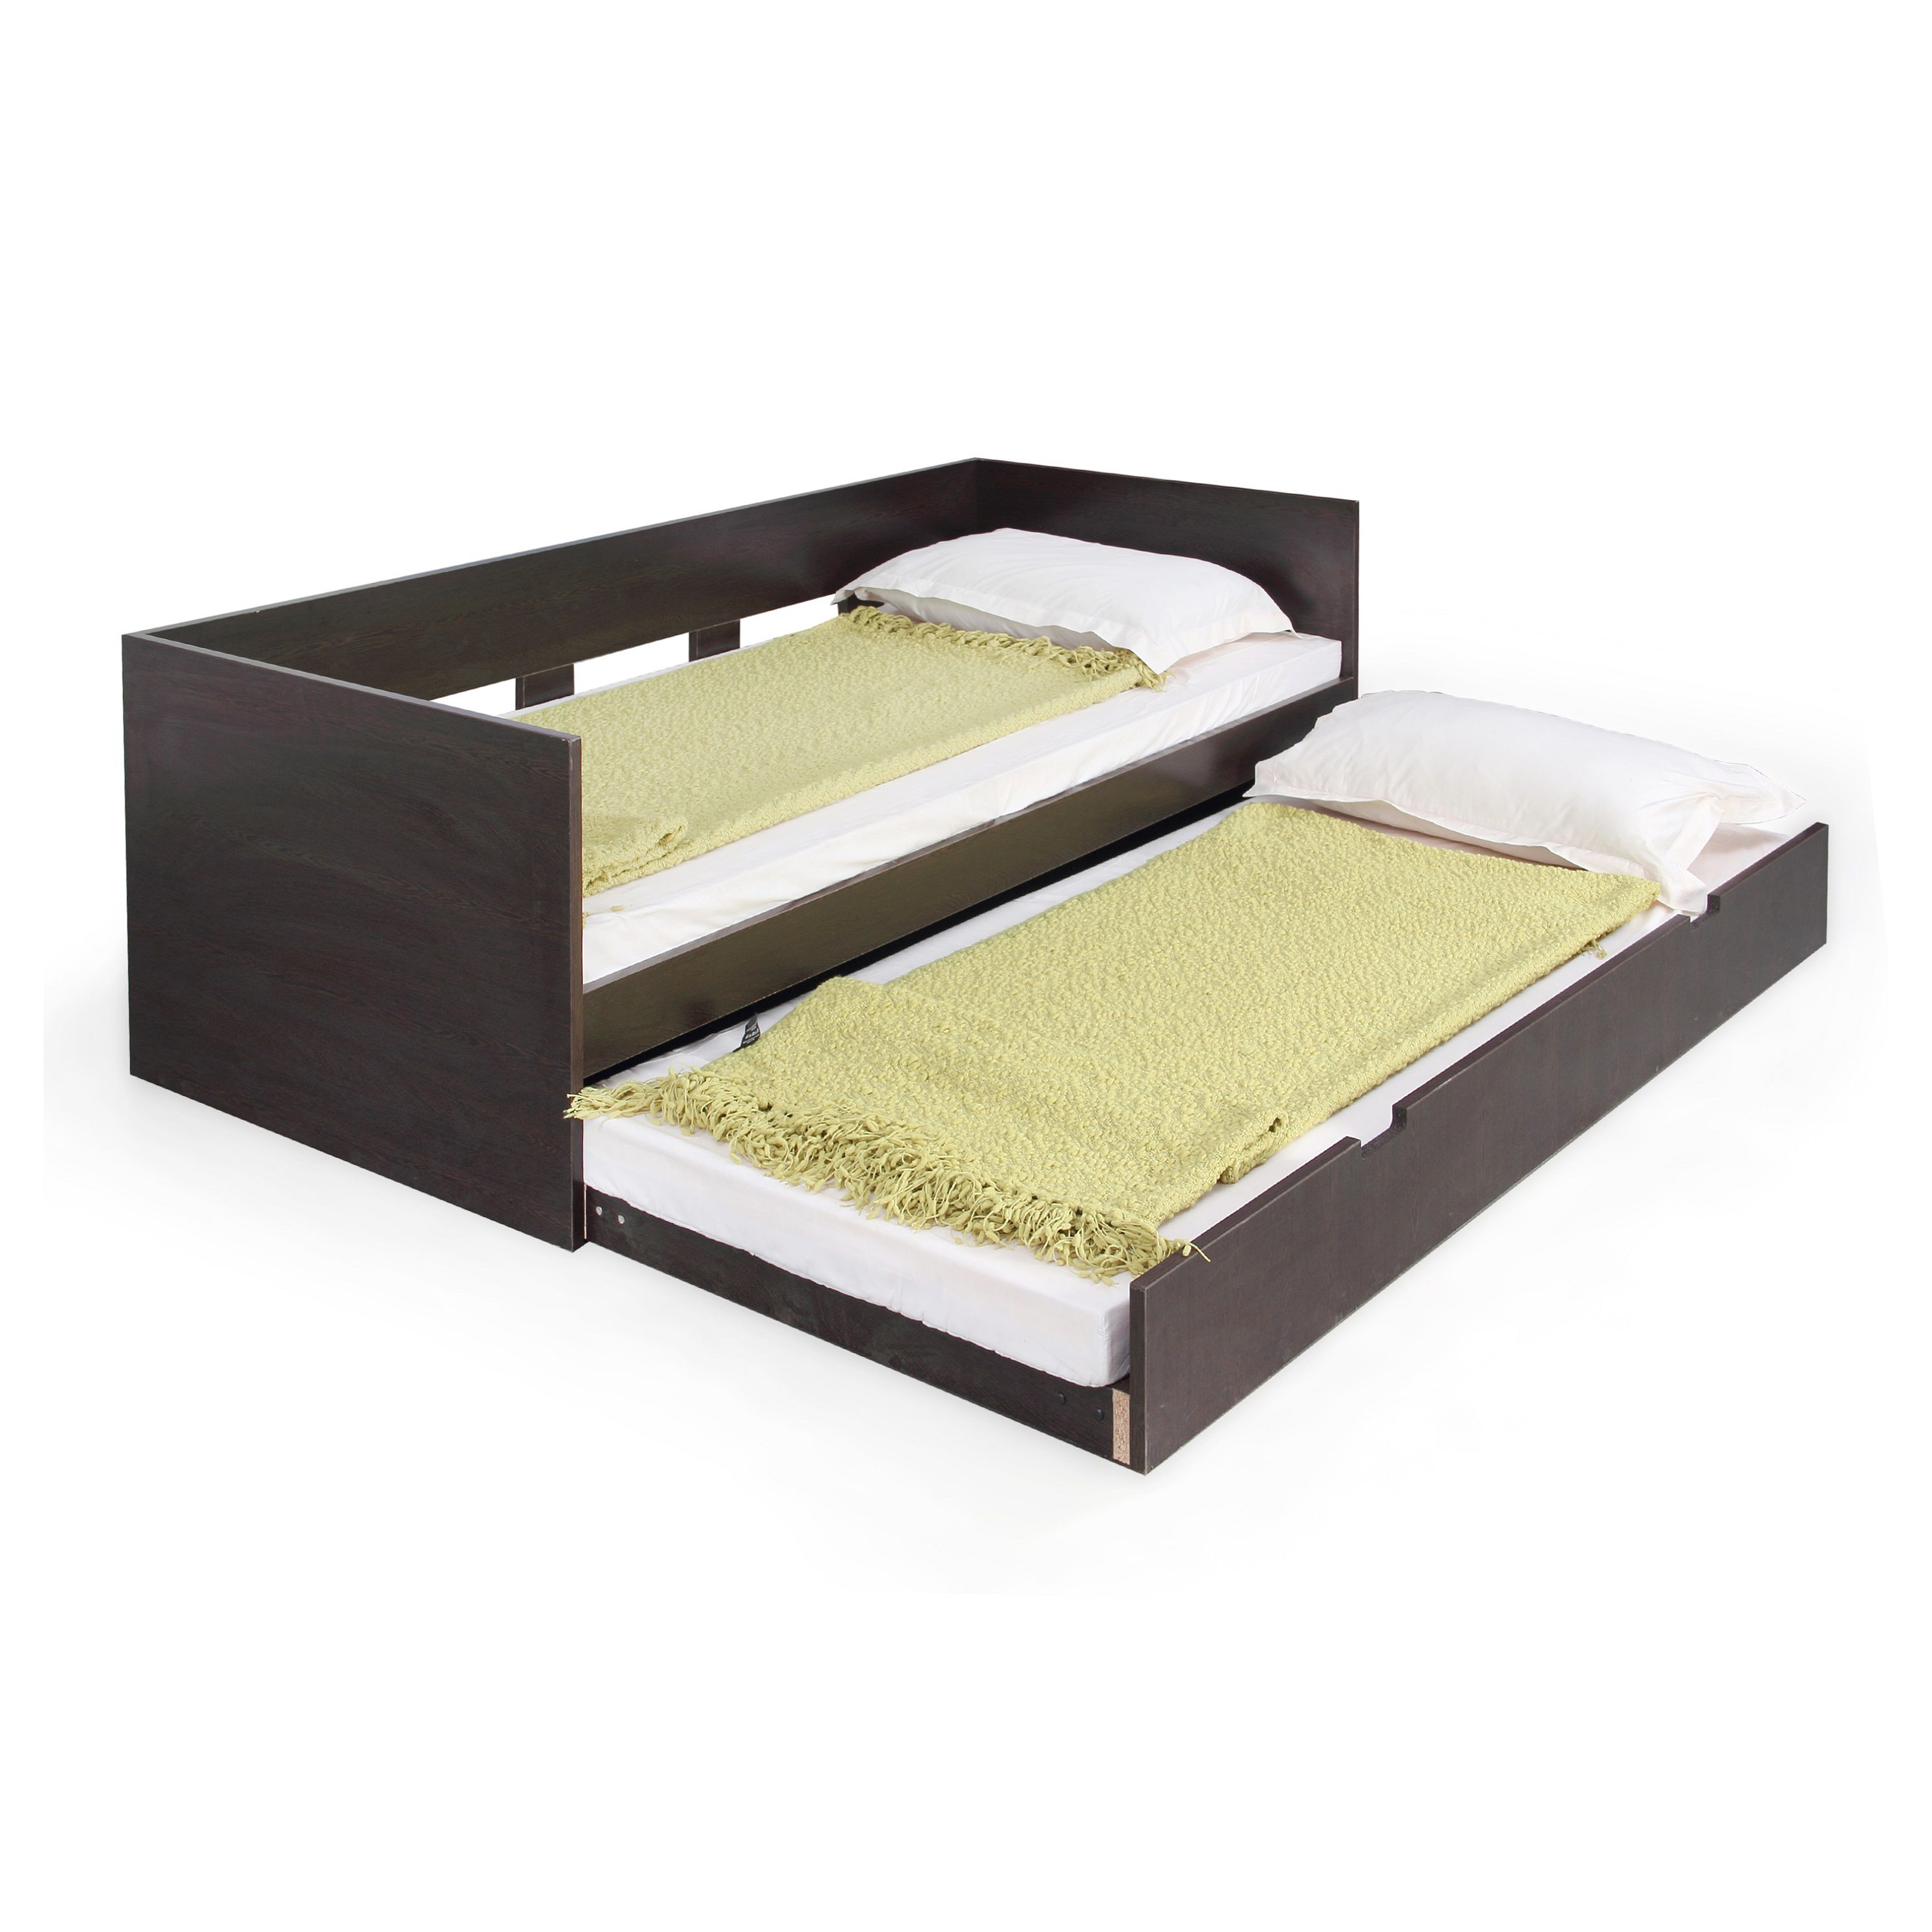 Forzaa Murray Daybed Buy Forzaa Murray Daybed line at Best